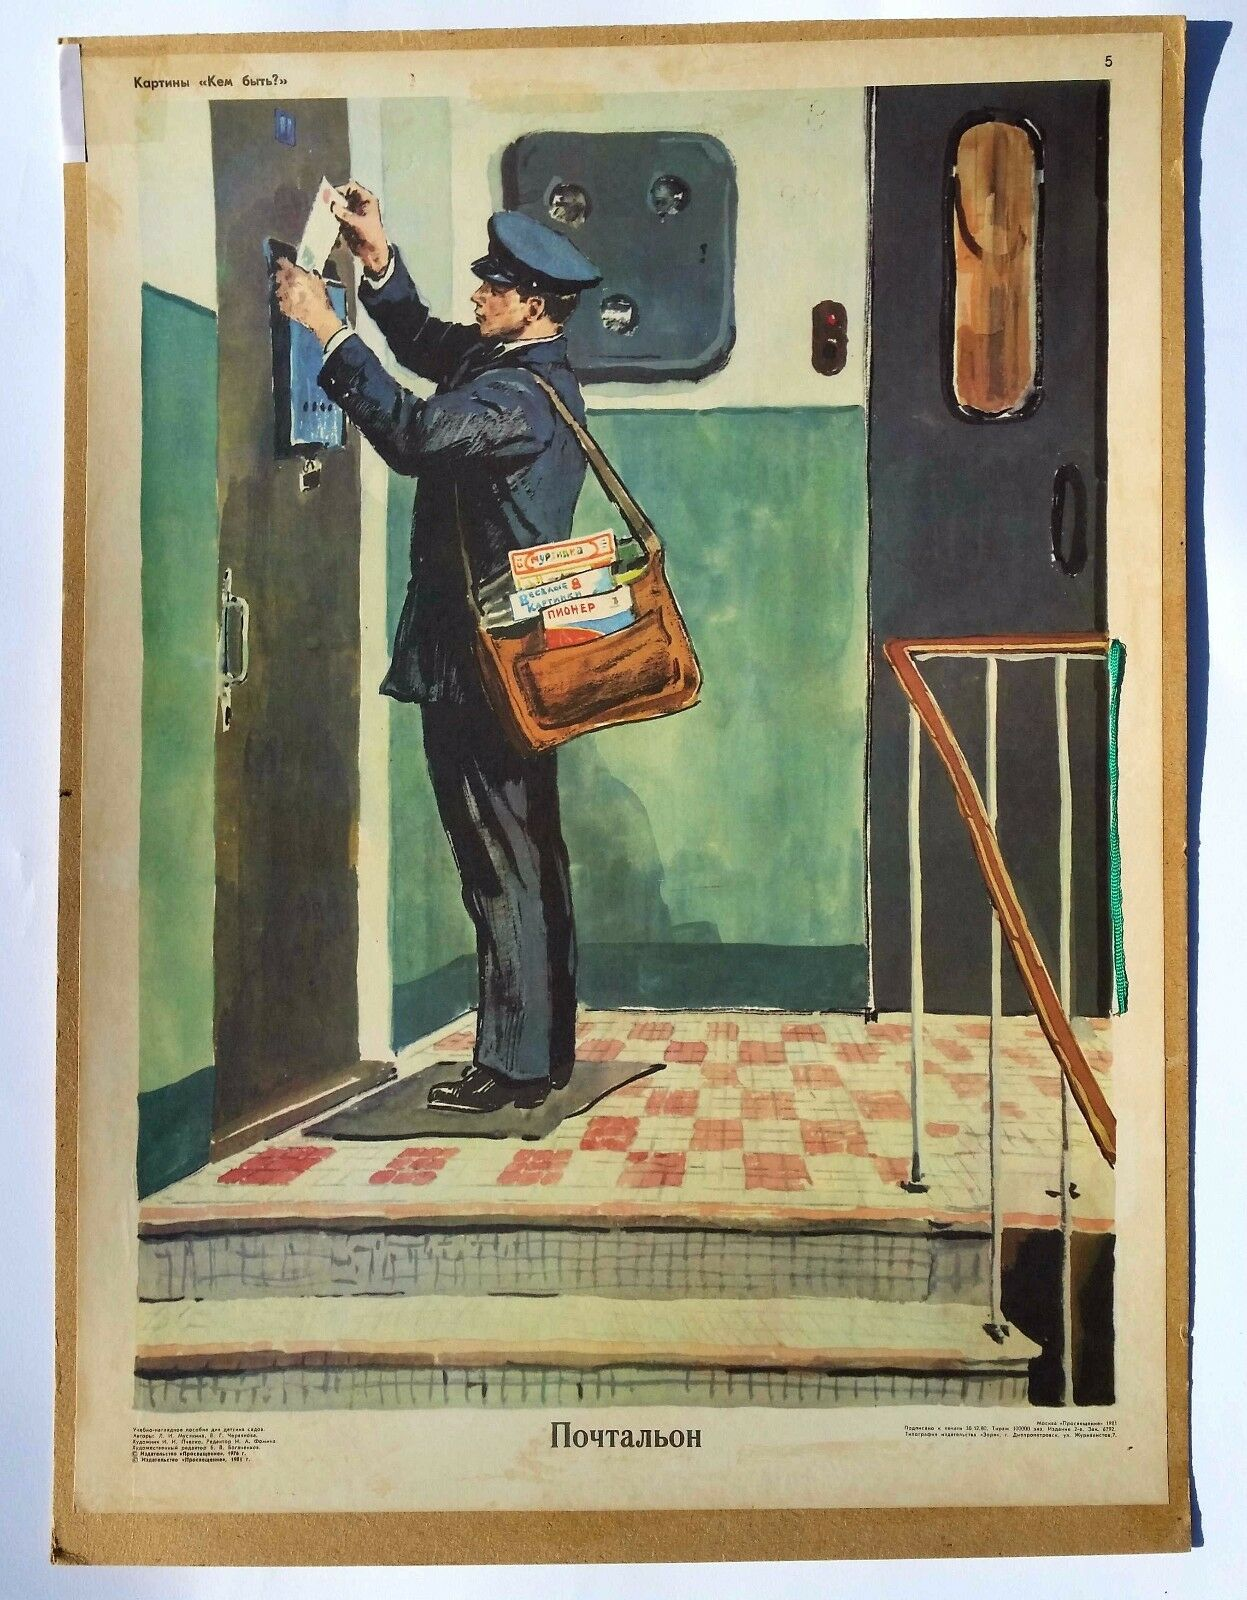 1981 Soviet Russia Educational and Visual Wall Big Size Poster POSTMAN